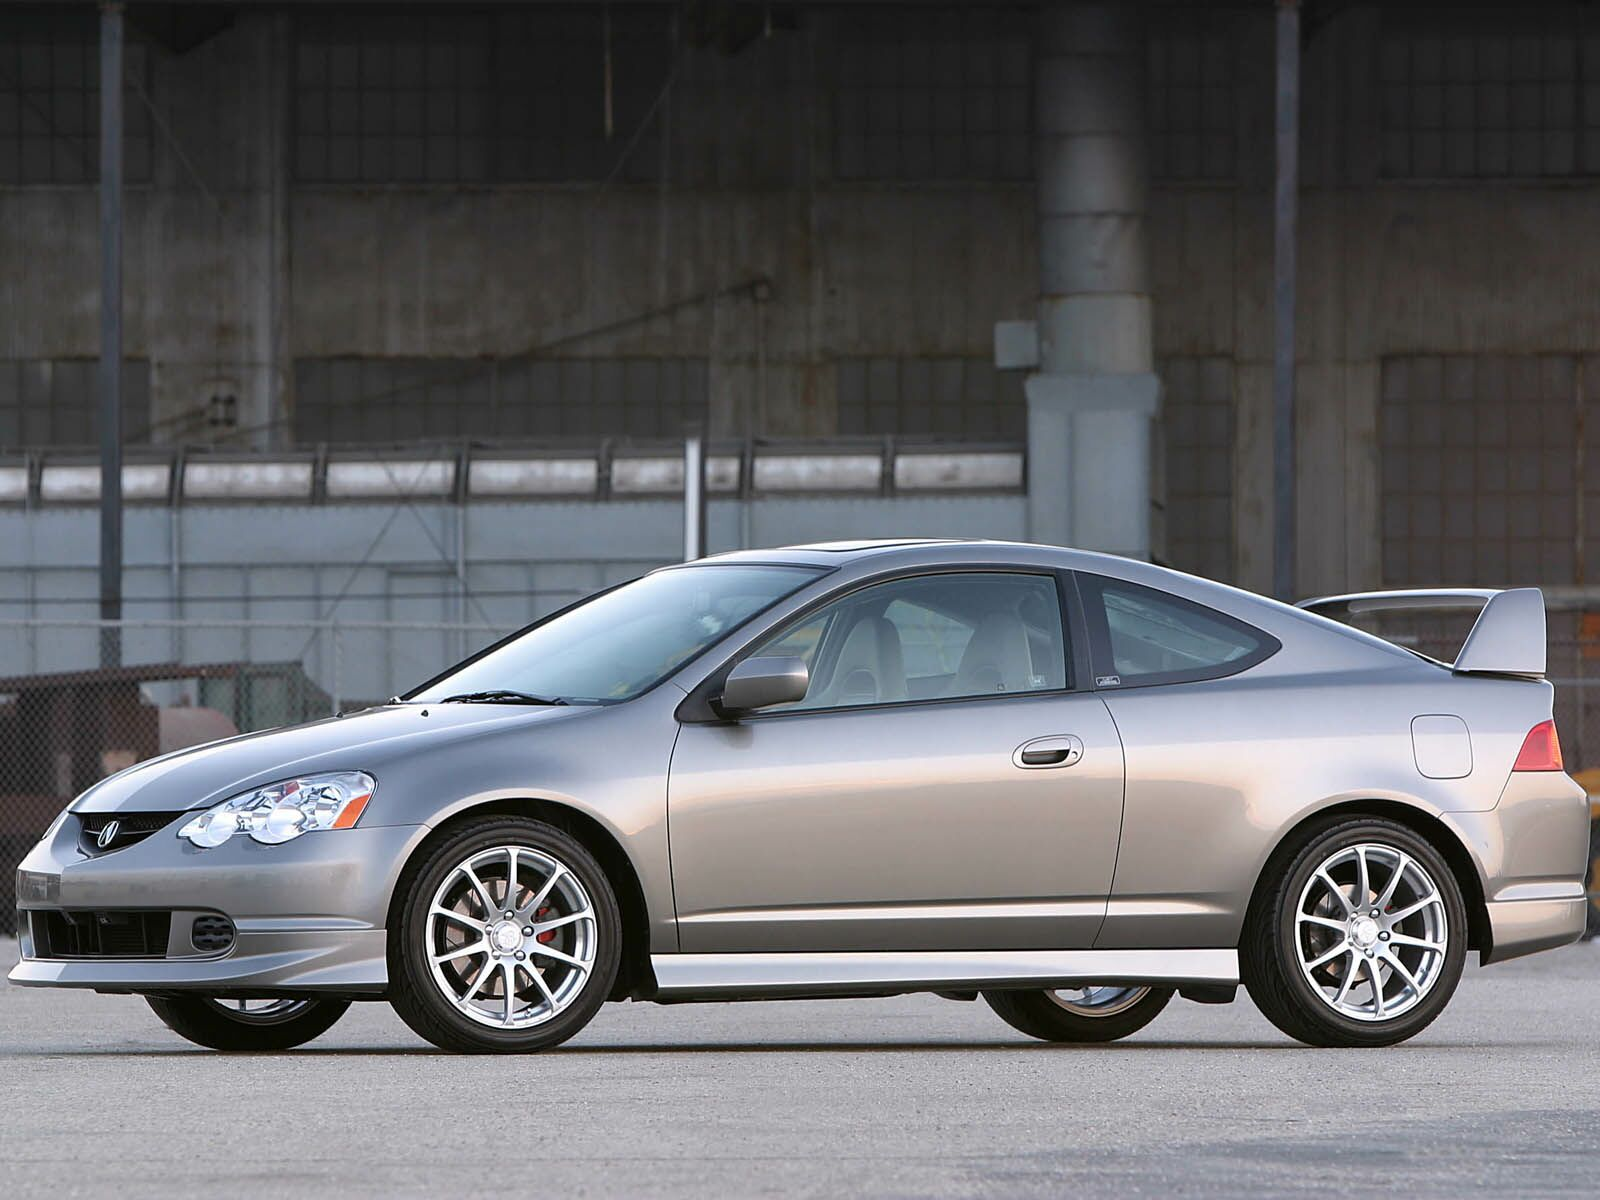 Acura RSX Side